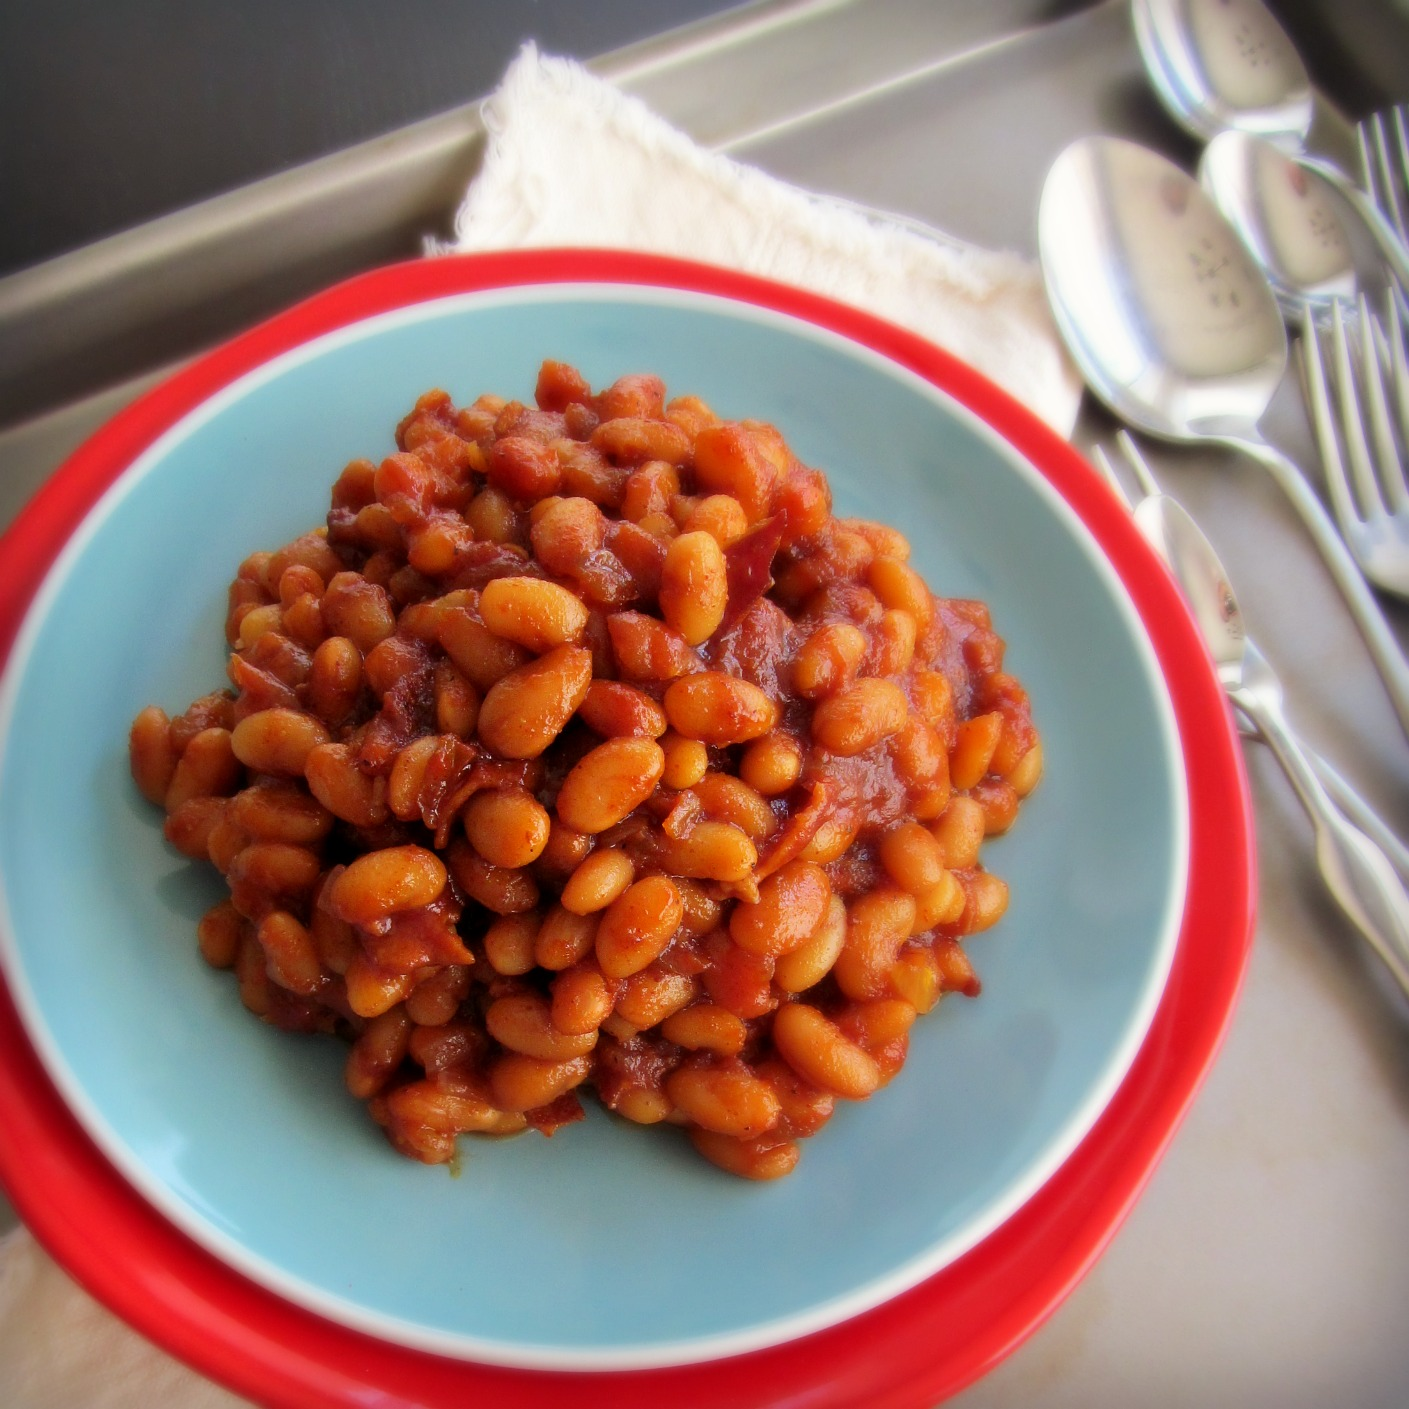 Barbecue Baked Beans From Scratch - With bacon, brown sugar, and Magic ...